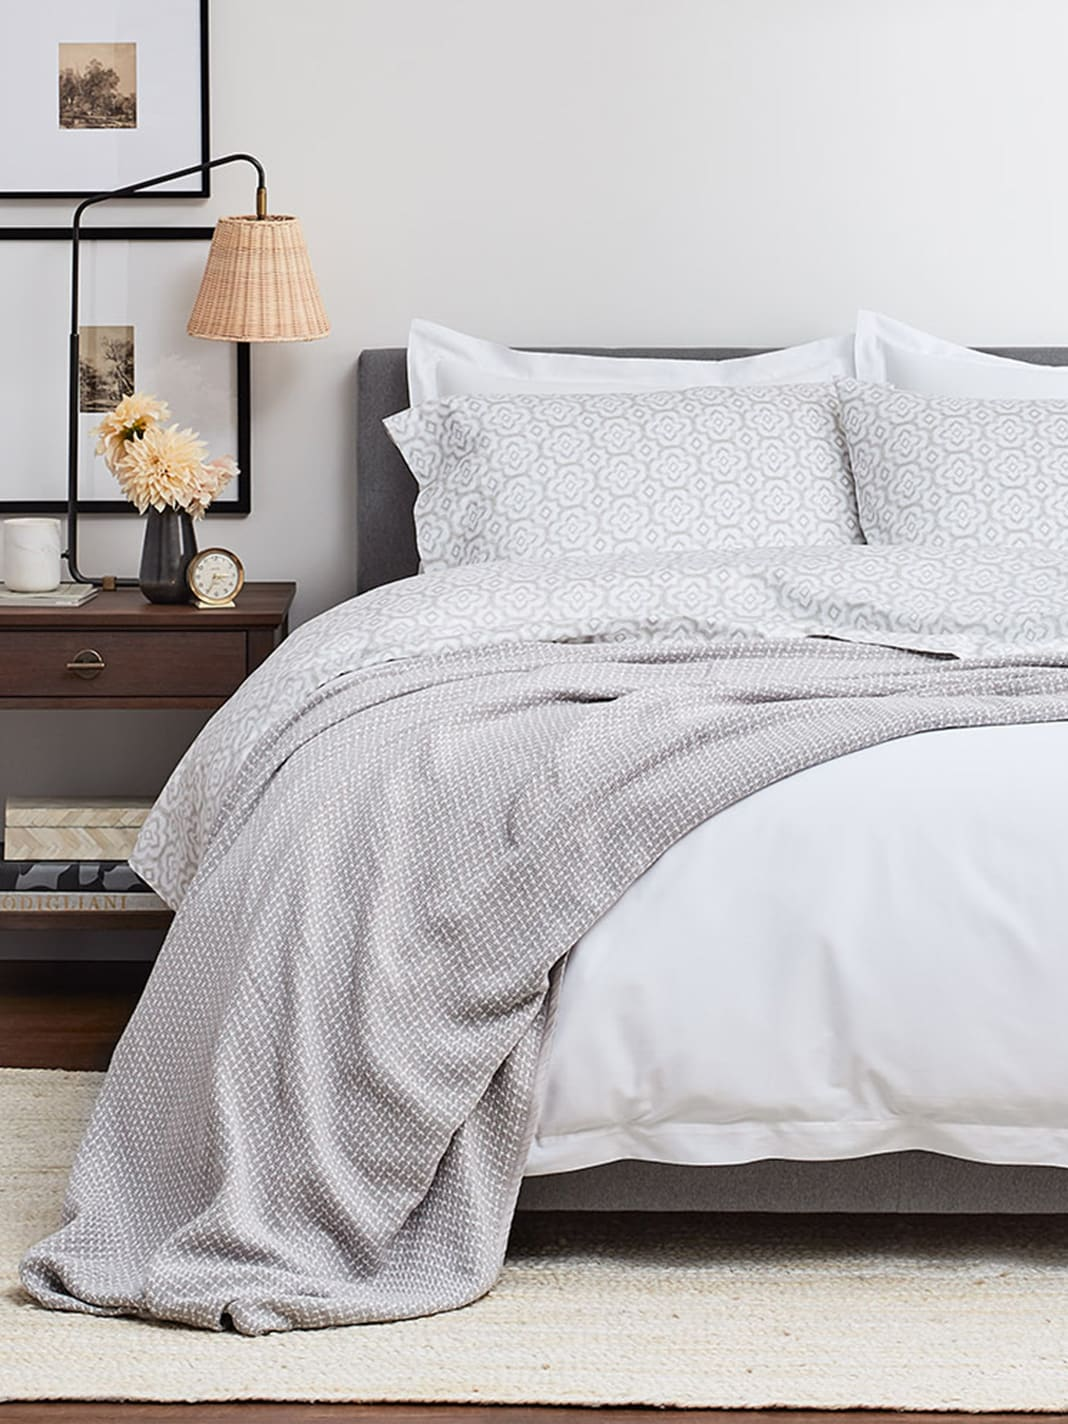 Gorgeous light grey Pickstitch blanket (Pewter) from Boll & Branch makes the perfect subtle accent in a tranquil bedroom. #bedroomdecor #bedding #blankets #pickstitch #bollandbranch